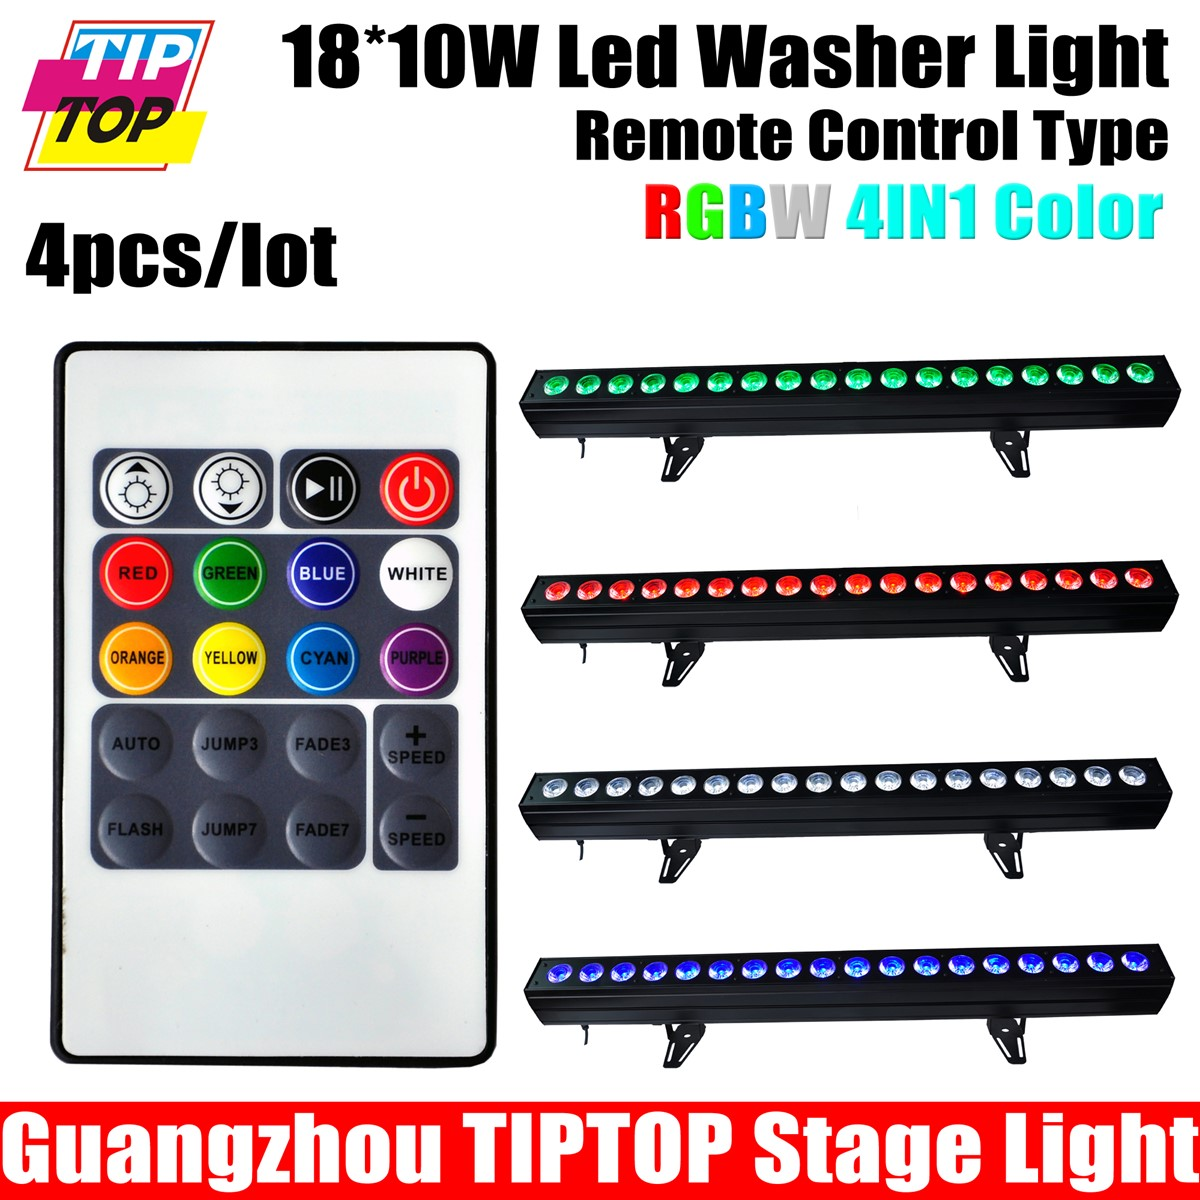 200W RGBW Led Wall Washer Indoor Flood Light 4IN1 18x10W White RED Blue Green Warranty CE Rohs